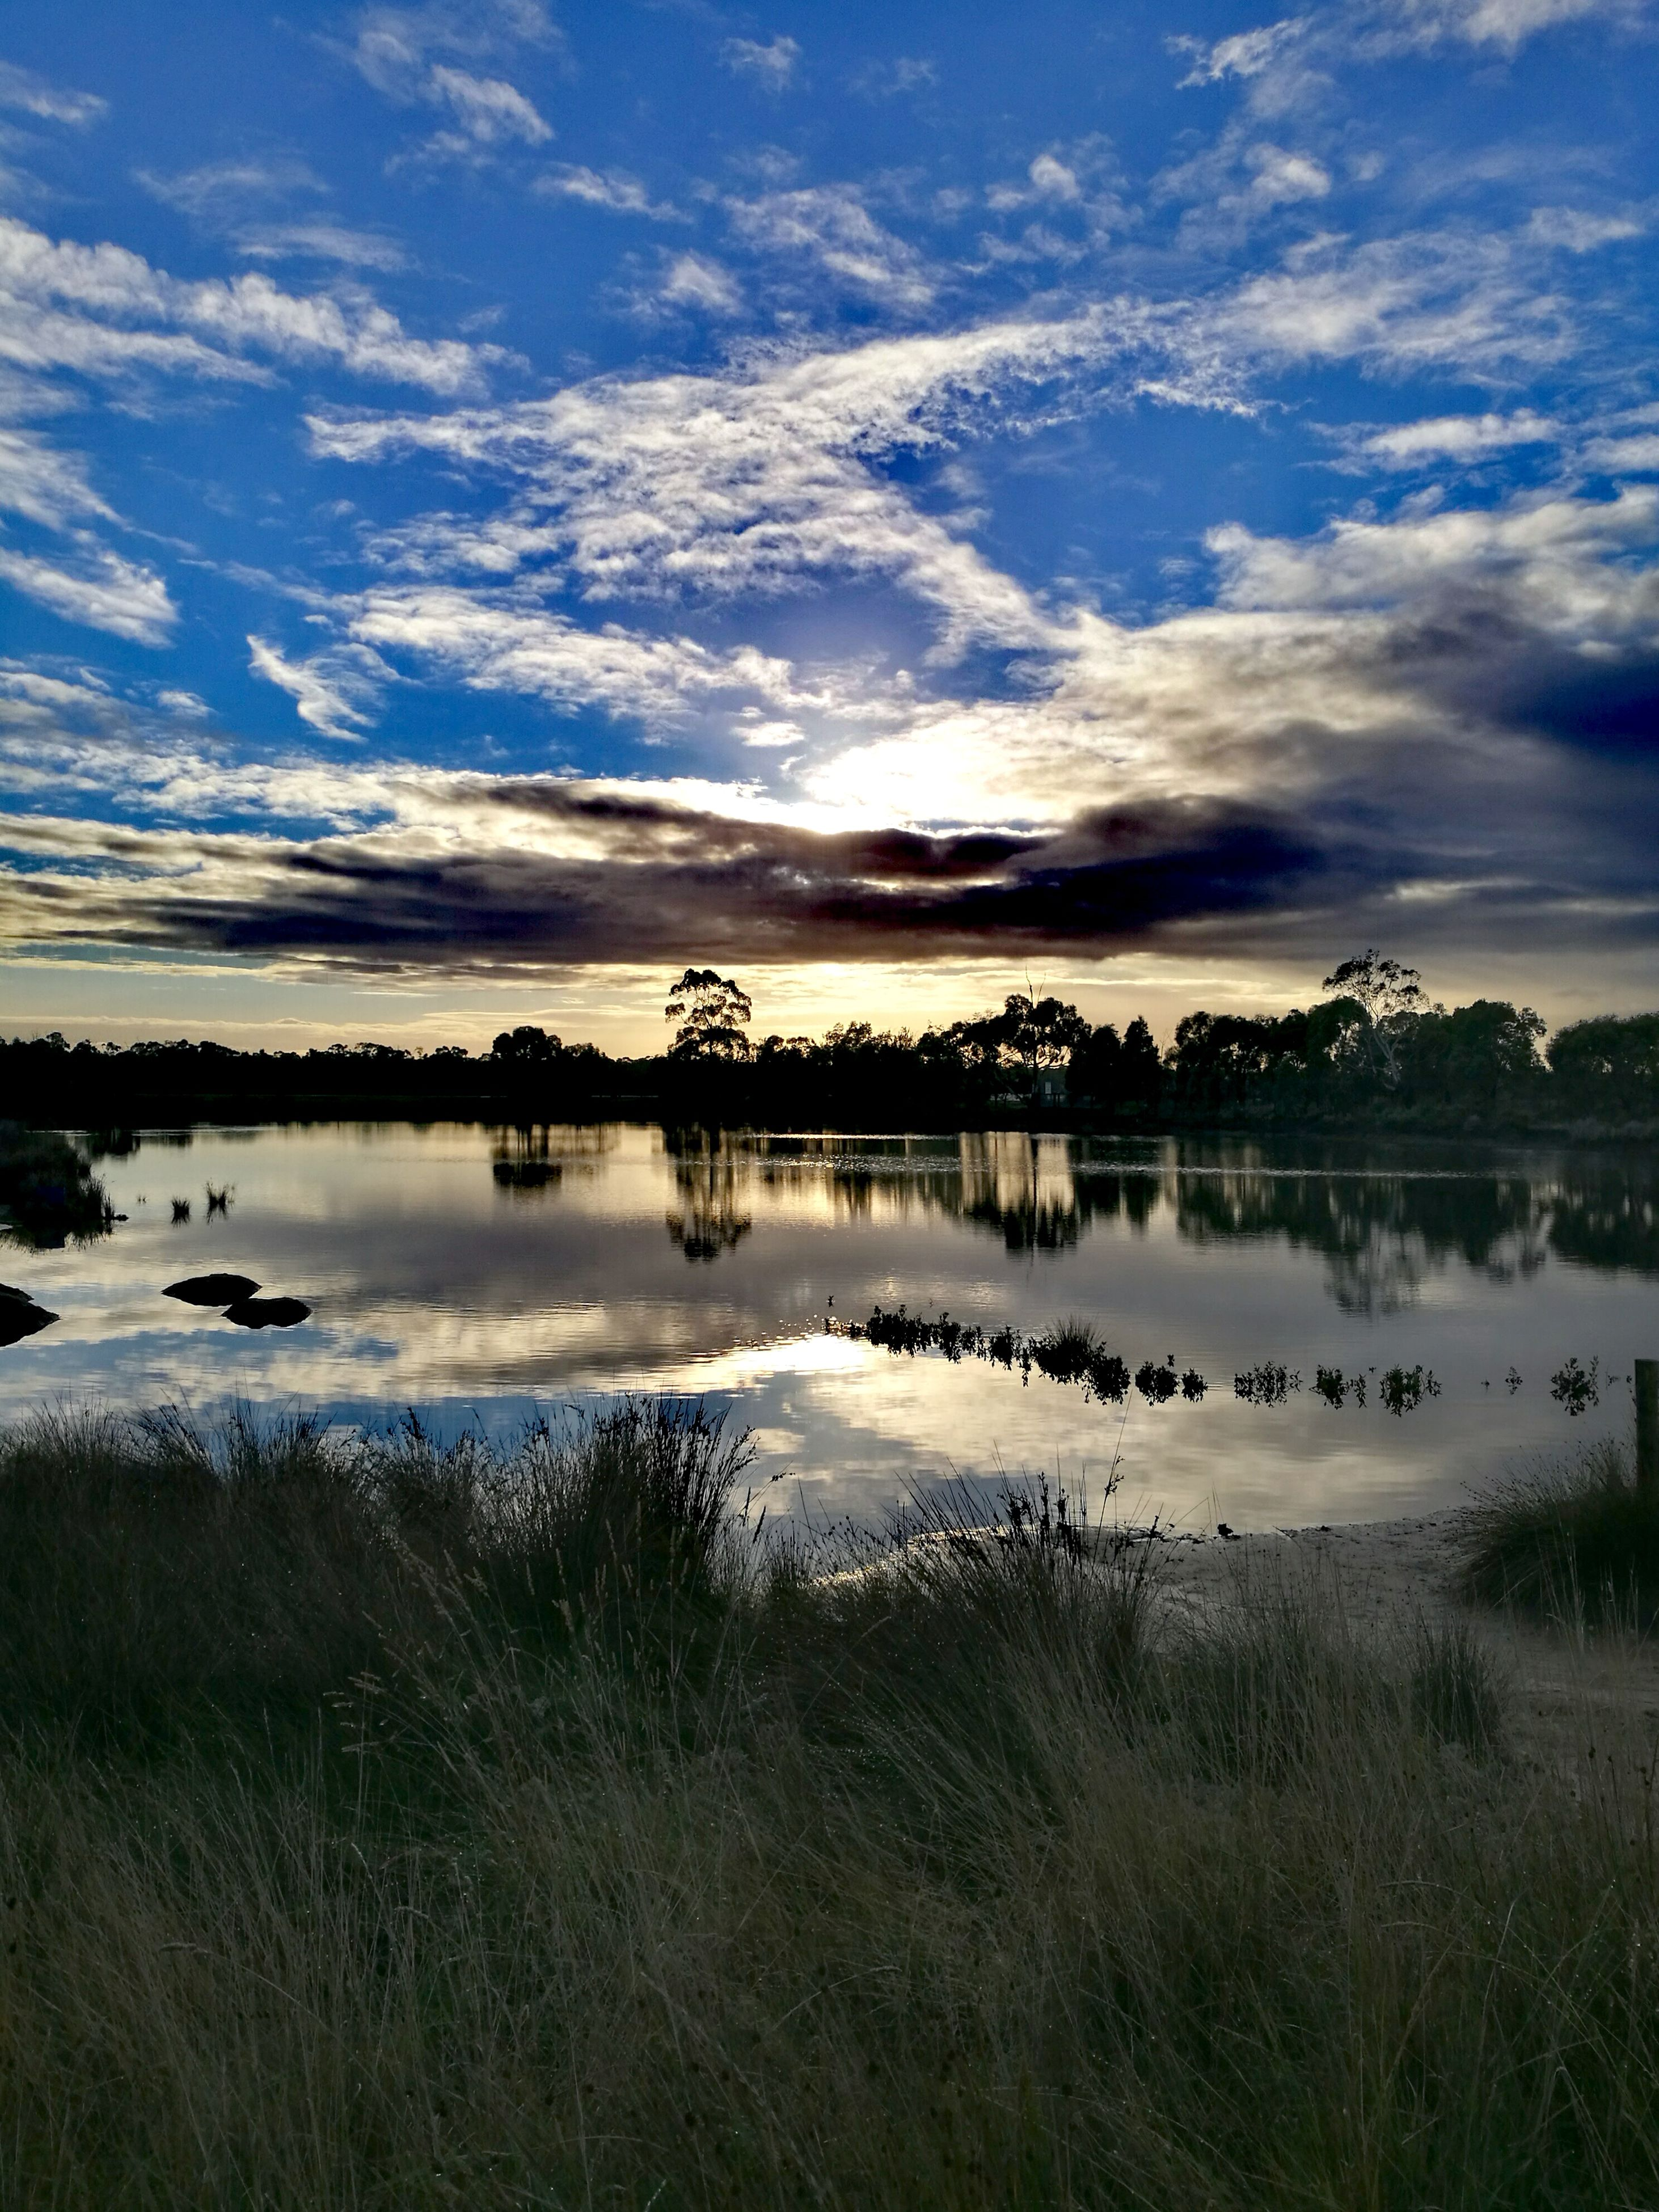 reflection, water, tranquil scene, sky, nature, tranquility, lake, outdoors, cloud - sky, grass, beauty in nature, no people, scenics, landscape, sunset, day, tree